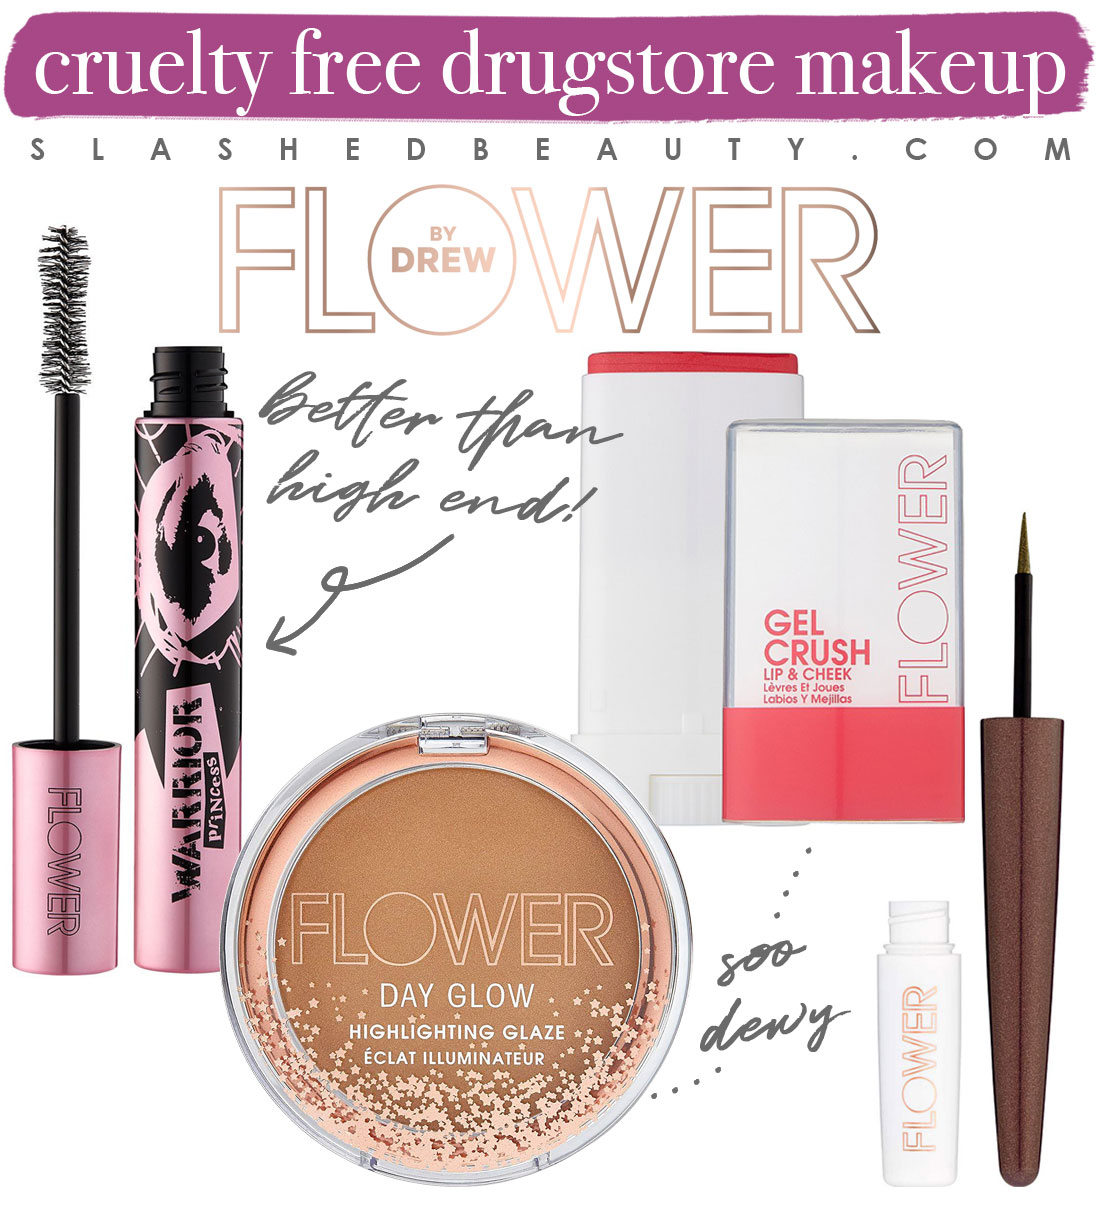 My 5 Favorite Cruelty Free Drugstore Makeup Brands   Flower Beauty Makeup Collage   Slashed Beauty